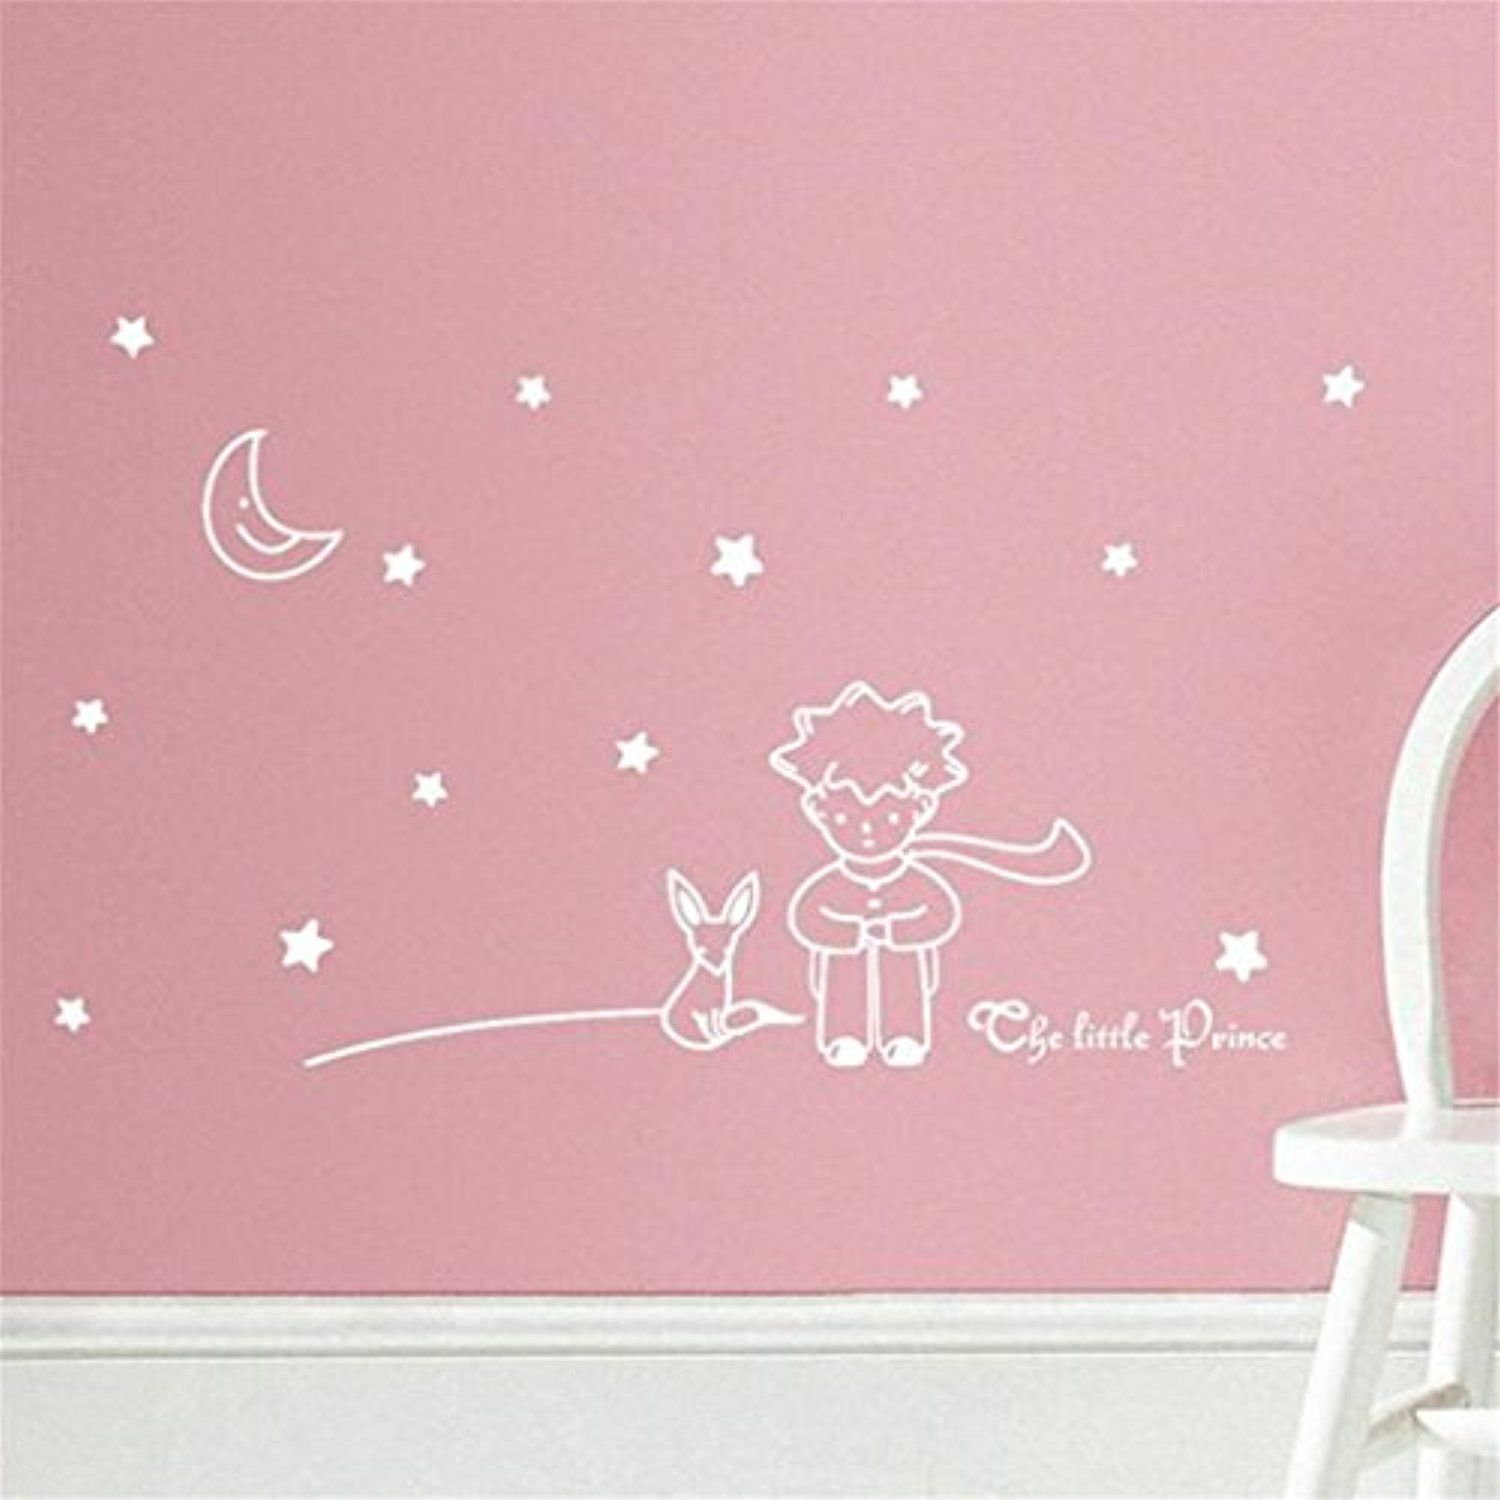 Wall Sticker, Stars Moon And The Little Prince Boy Wall